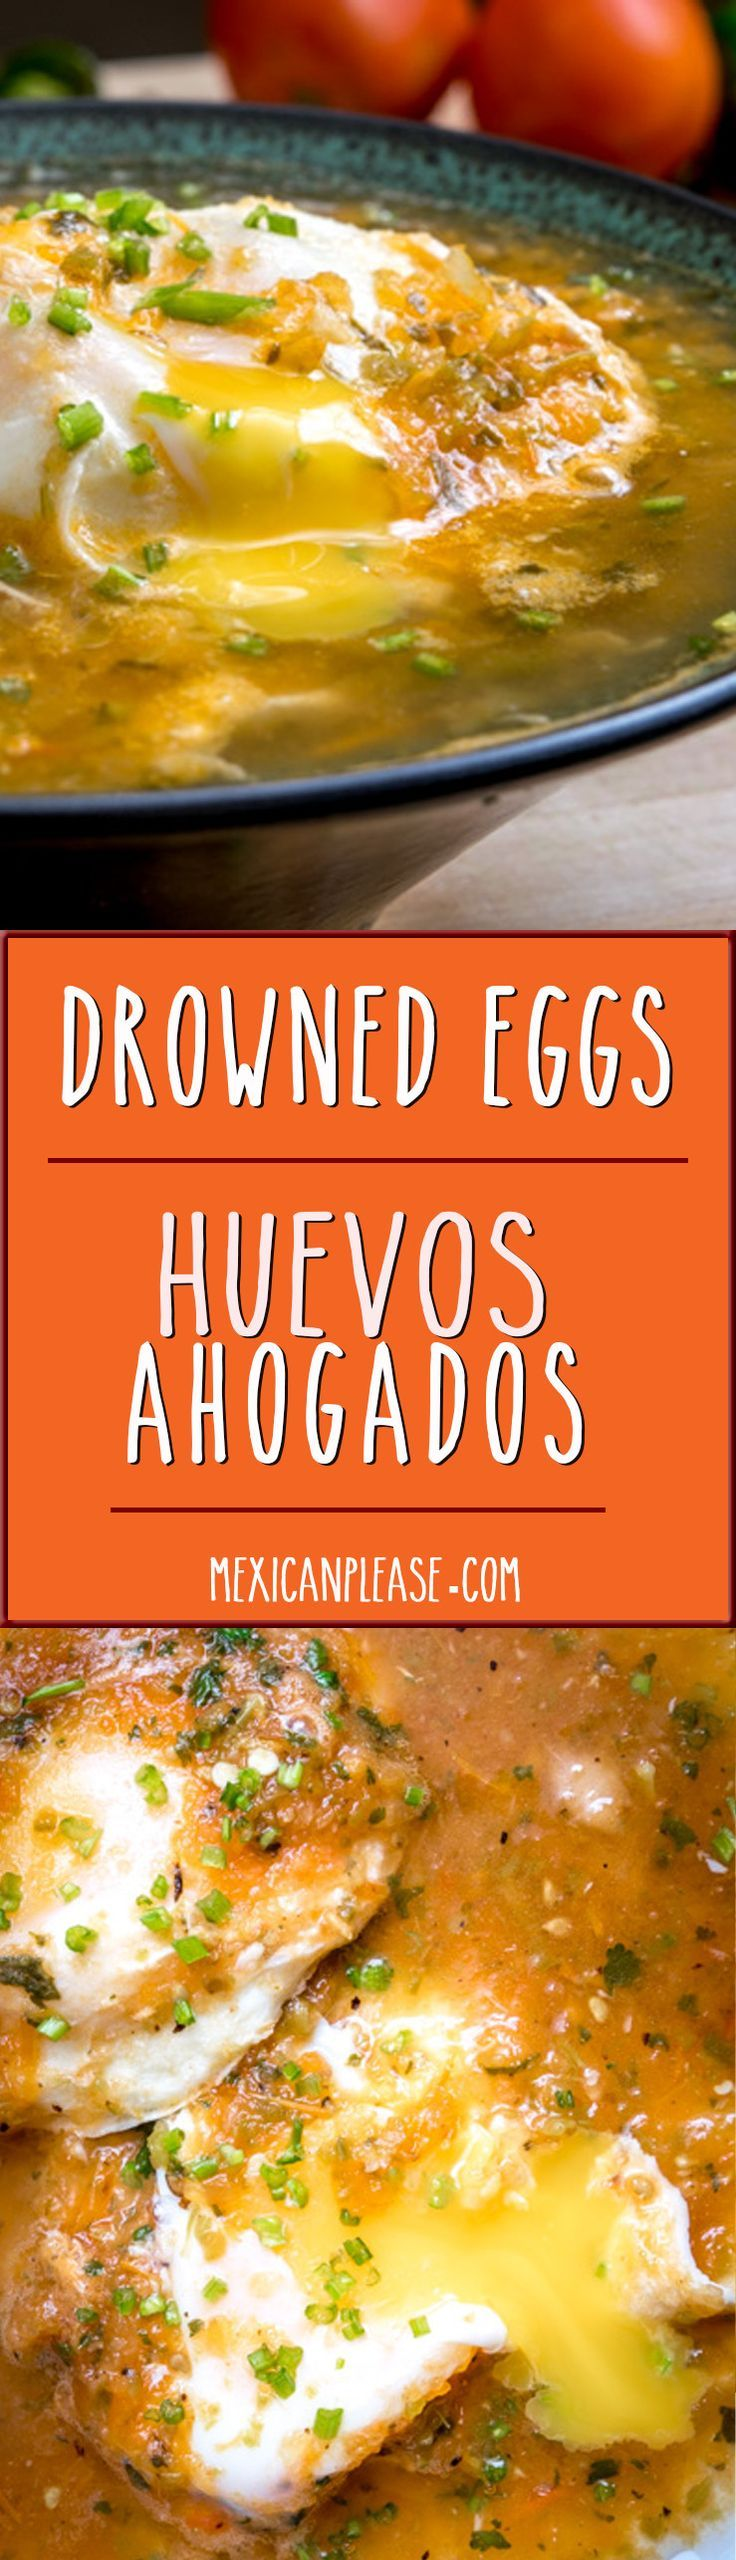 If you've never had eggs poached in homemade salsa before then wait no longer! You simply cannot beat the flavor of these Huevos Ahogados. So good! http://mexicanplease.com